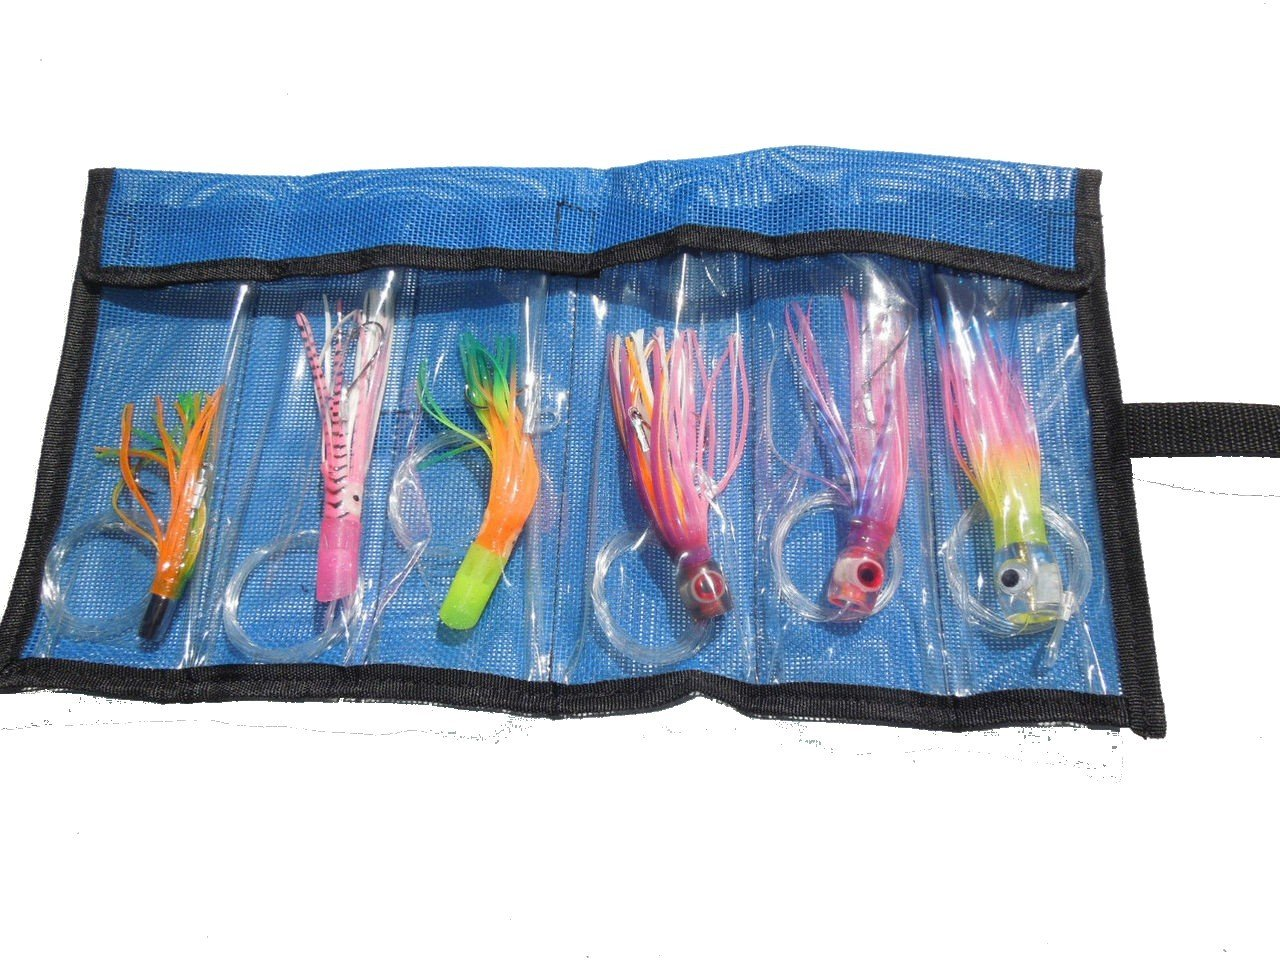 Offshore fishing lures billfish bonanza 6 pack Marlin Devils